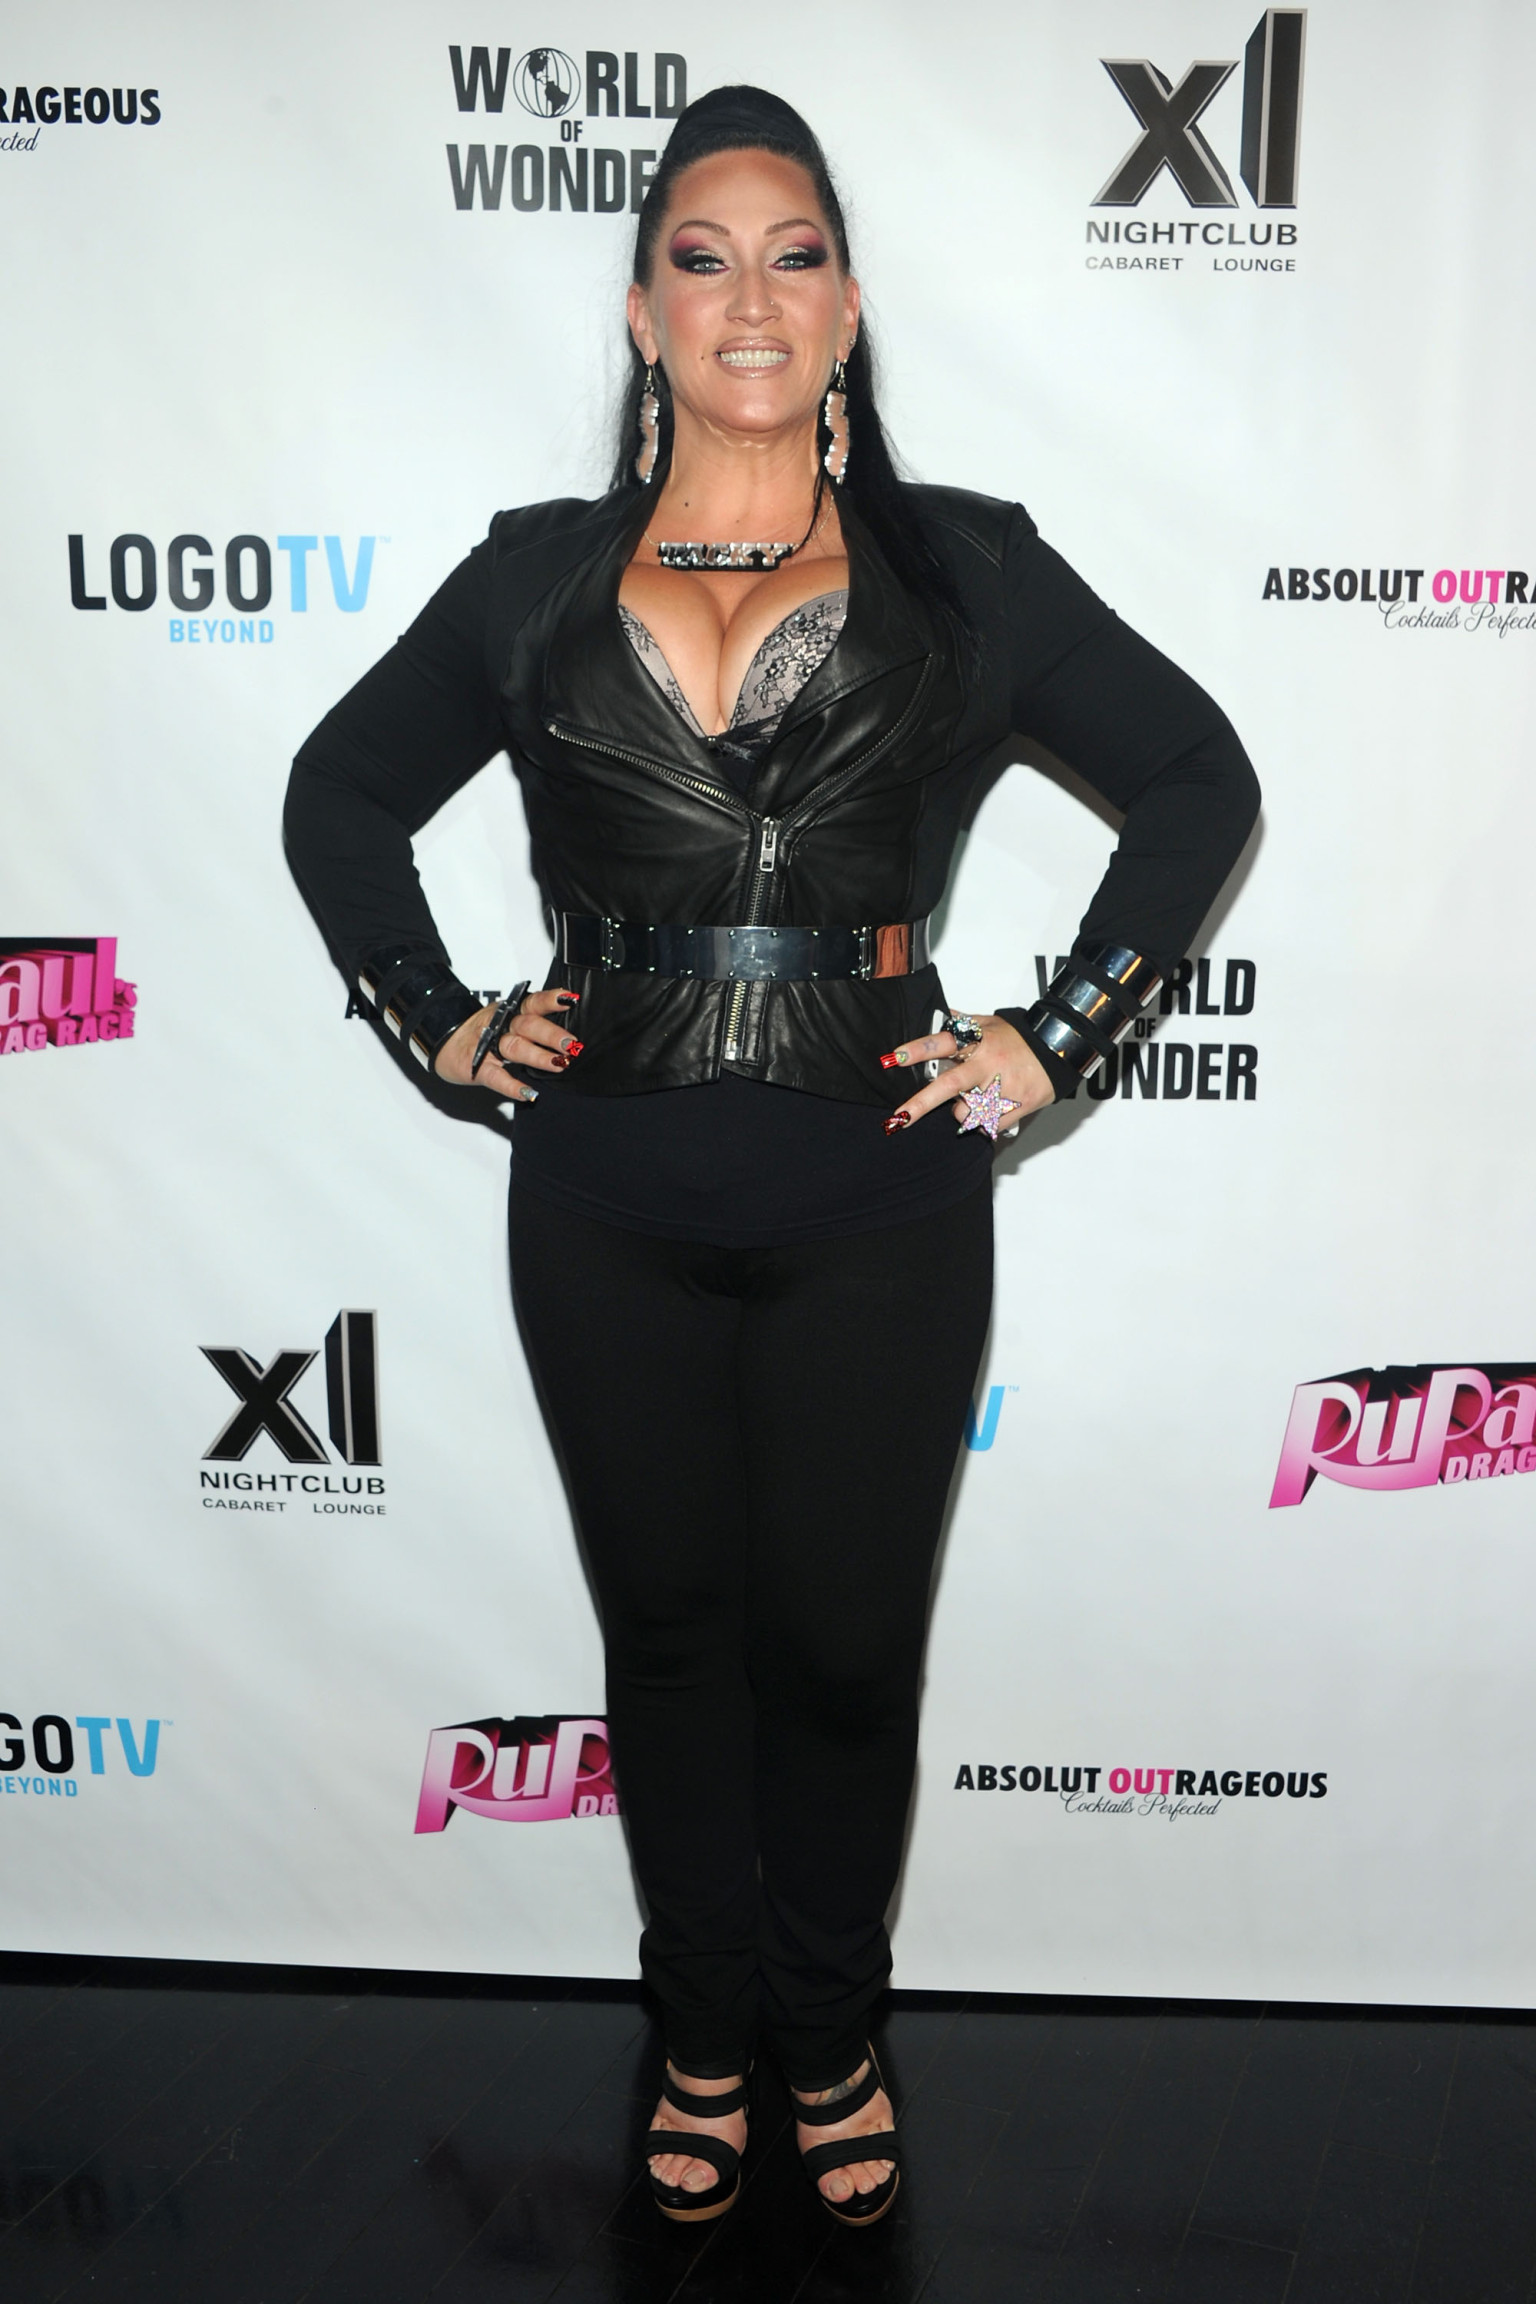 Cece Peniston: Michelle Visage Talks Miss'd America Pageant, Being